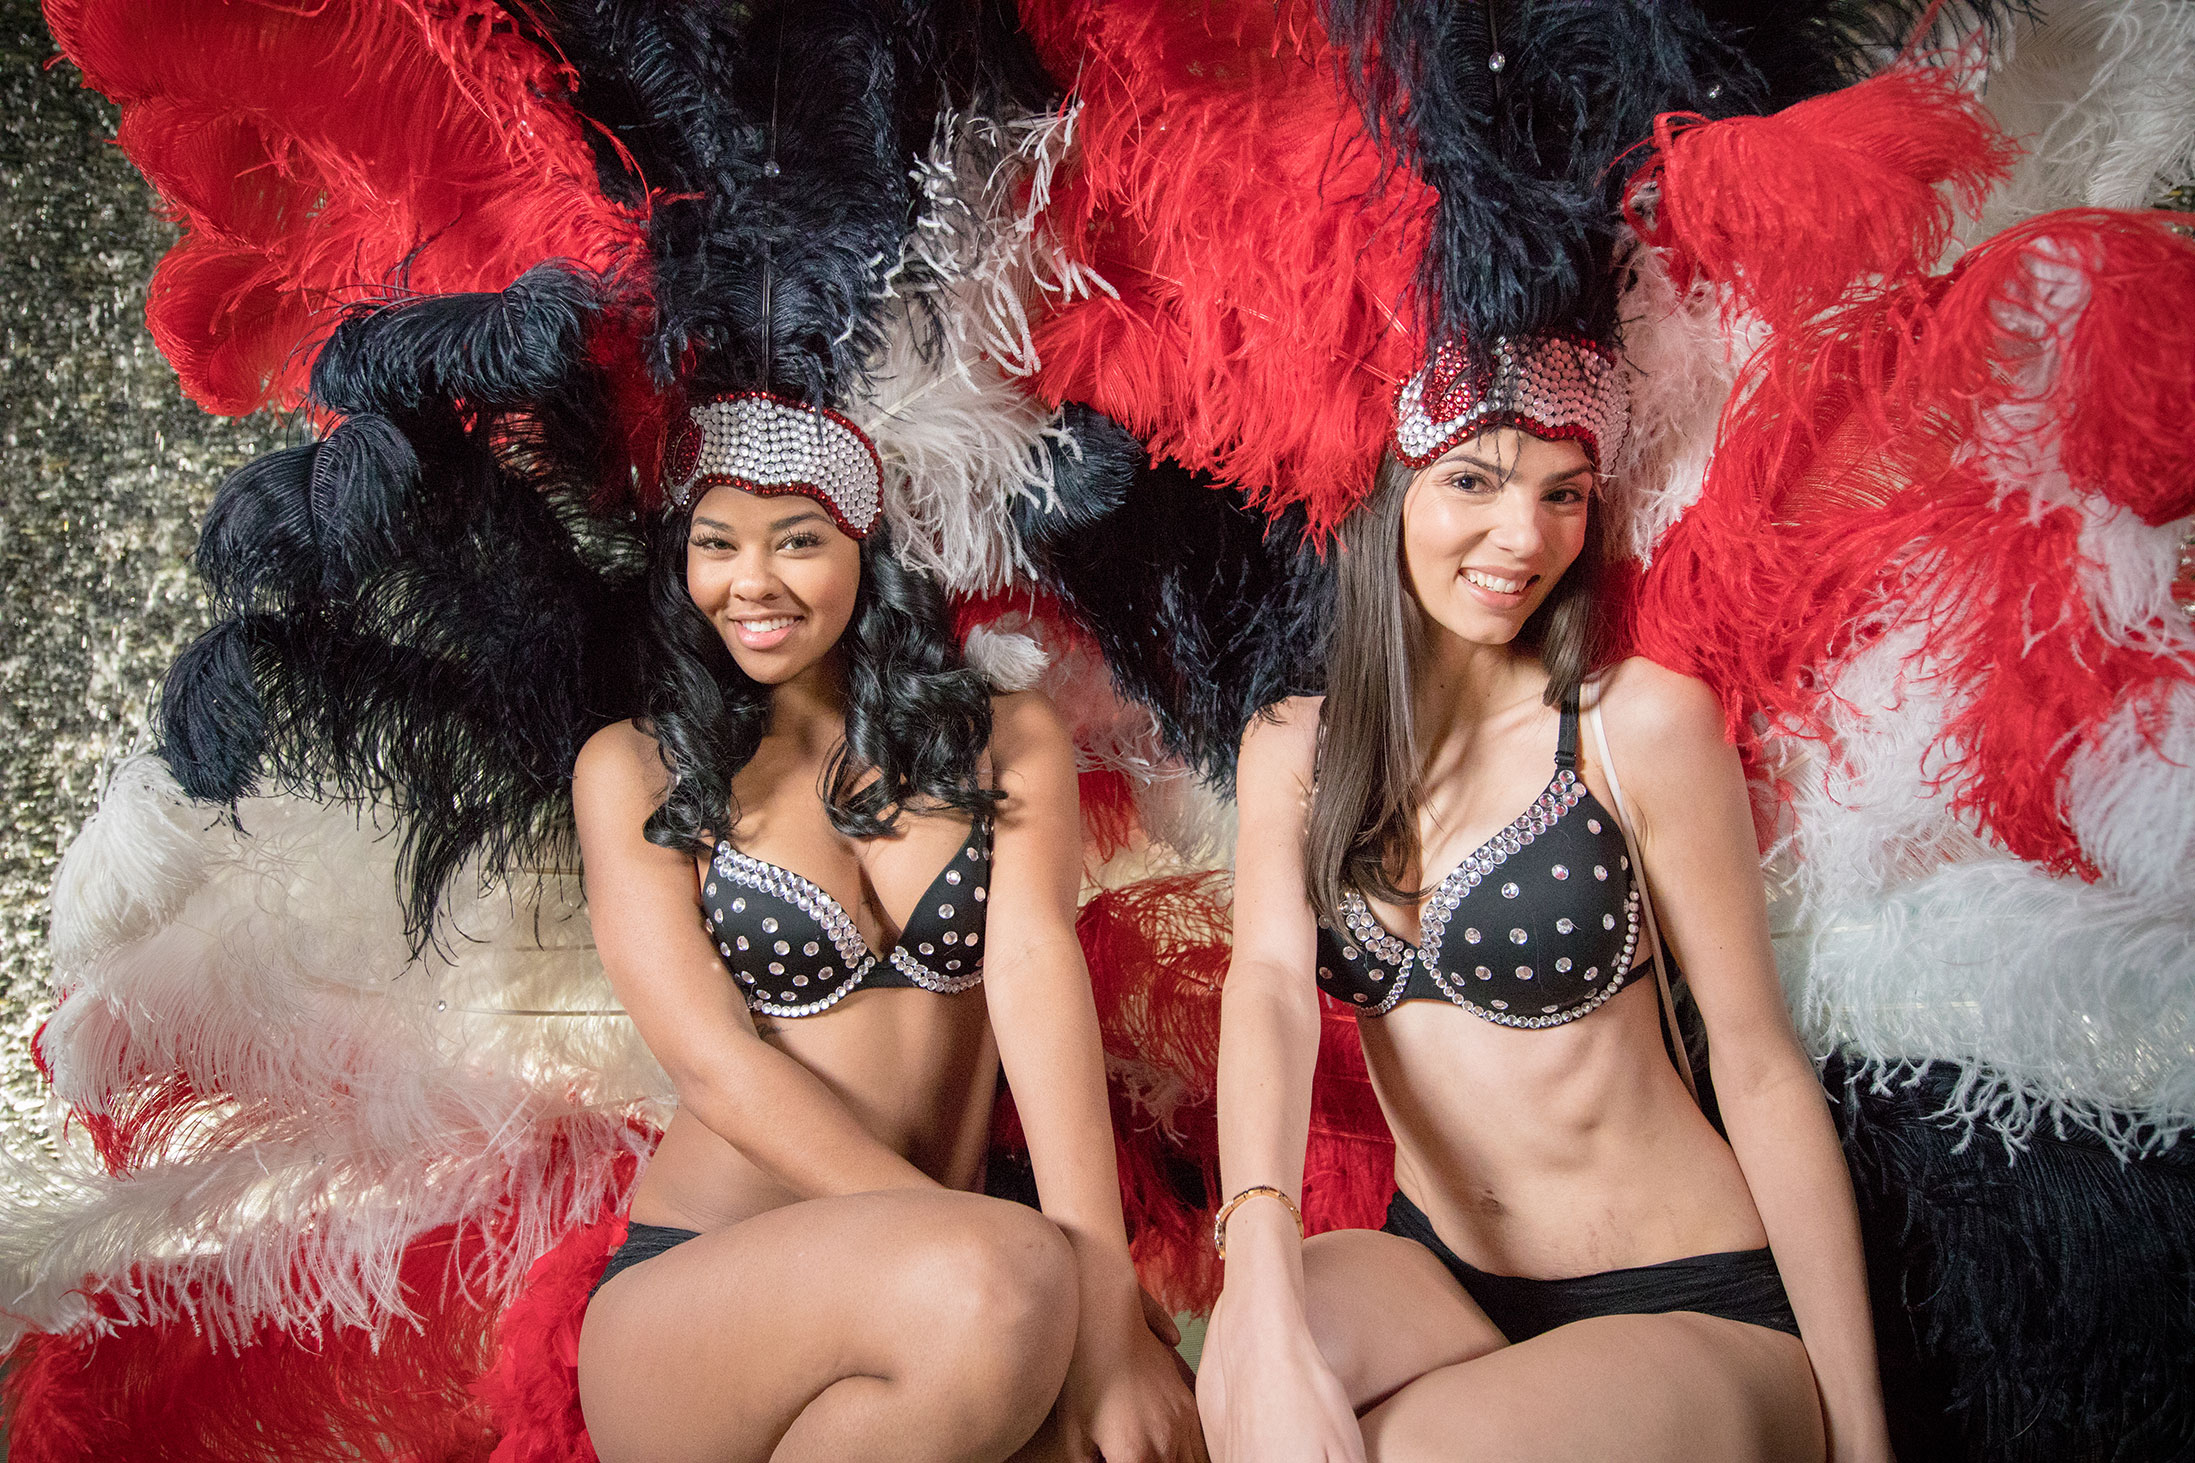 The Cheeky Showgirl